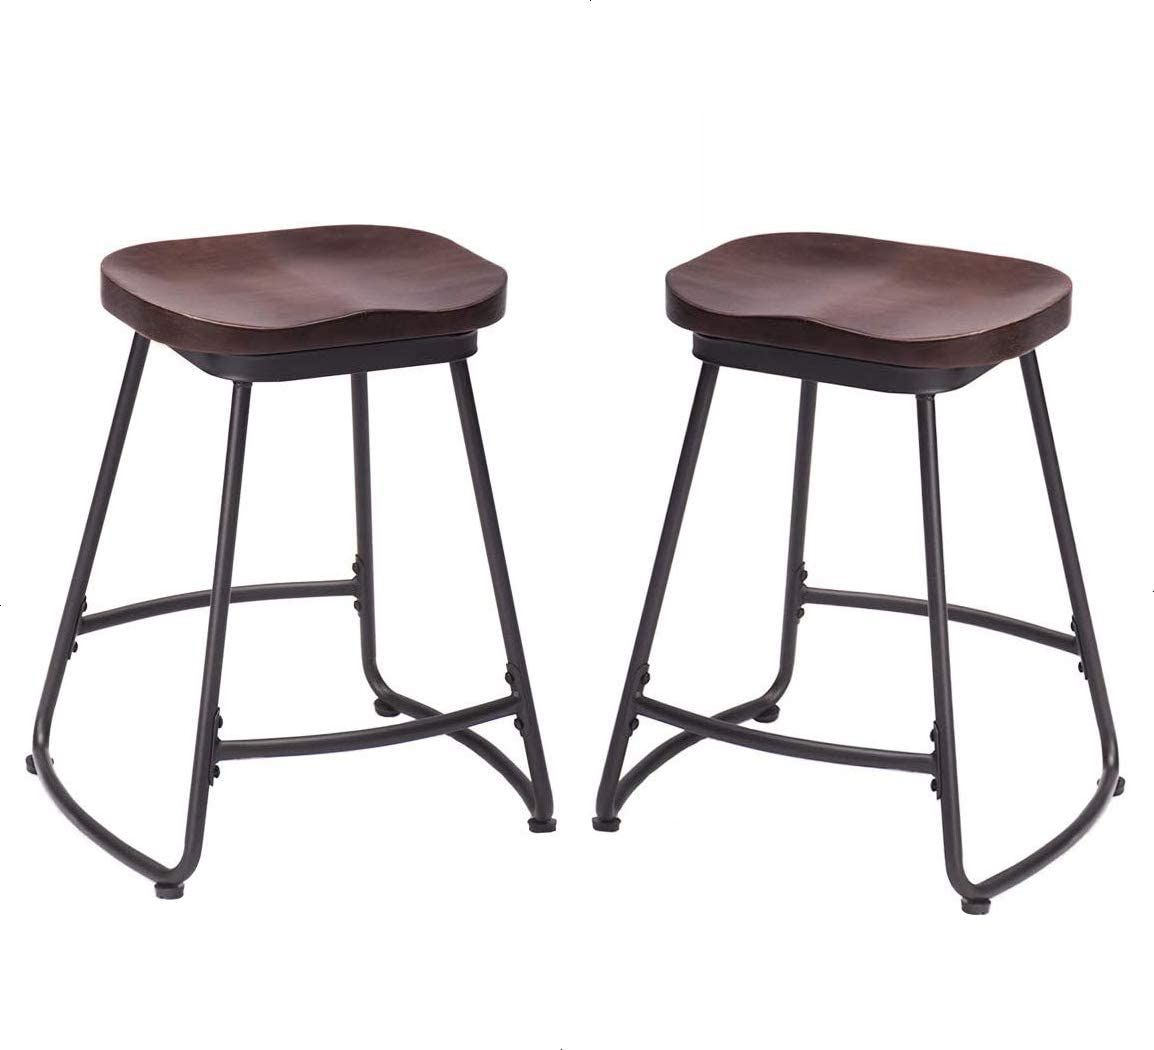 Alunaune 24 Metal Counter Stool Set of 2 Metal Counter Height Bar stools with Wood Seat